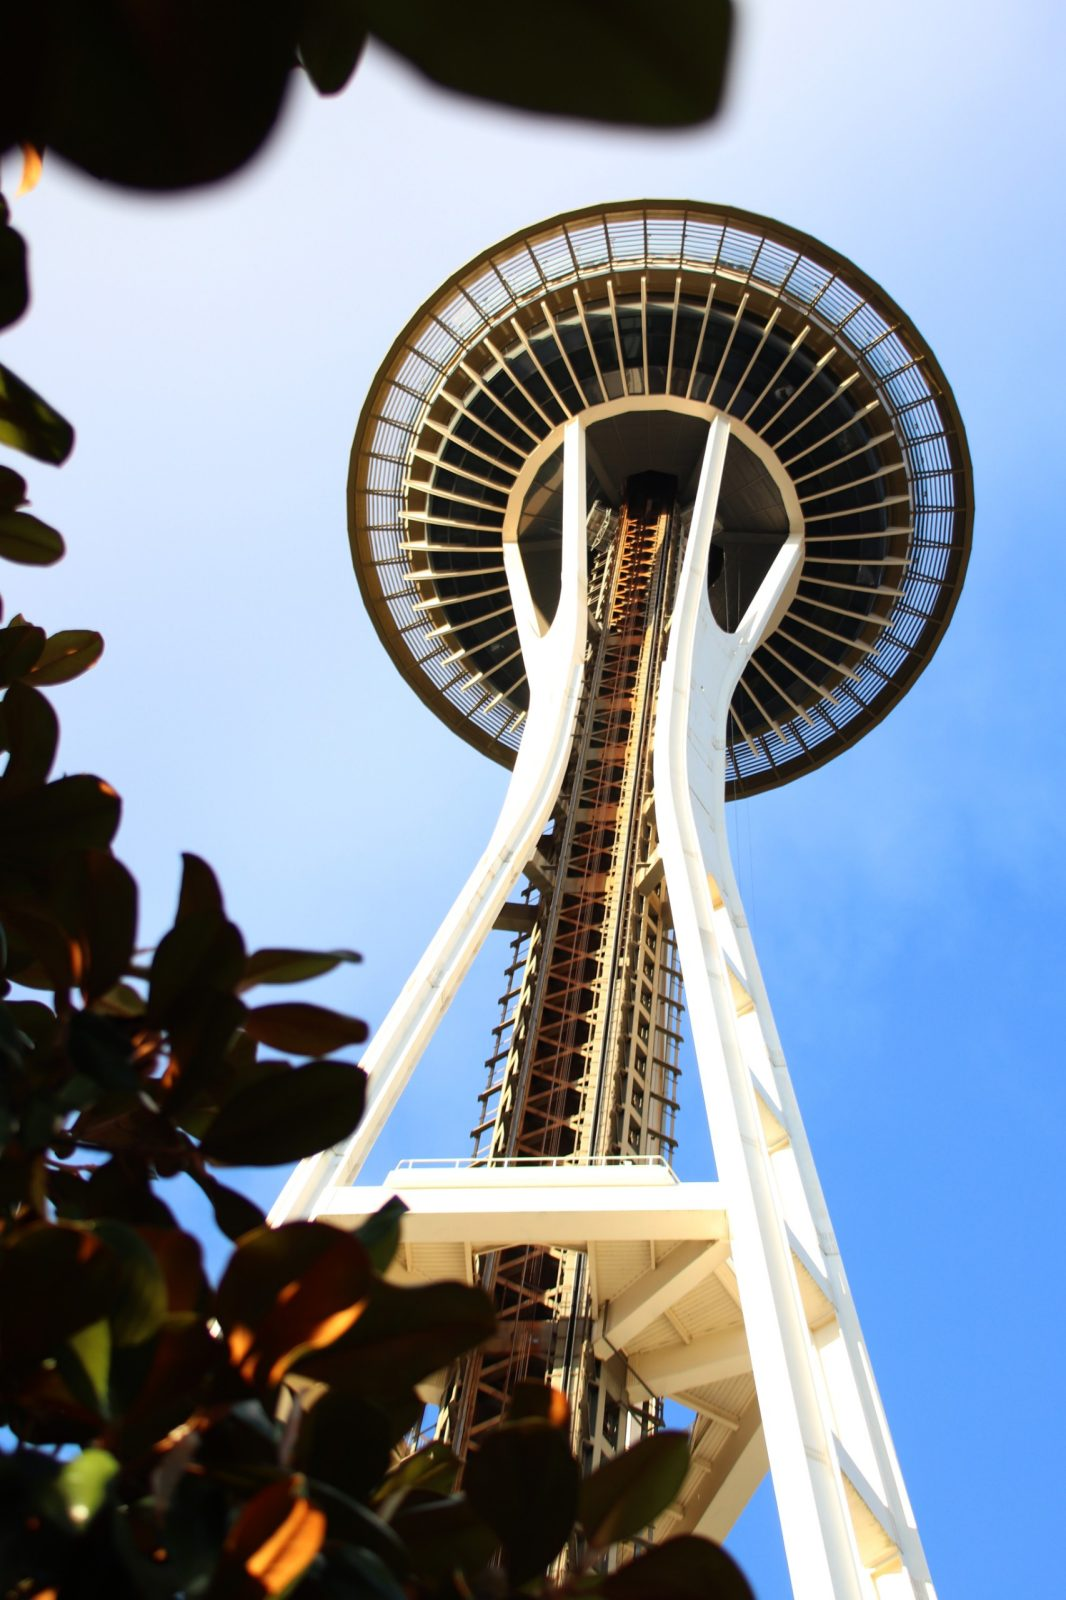 Photo of the Space Needle in Seattle, shot from below